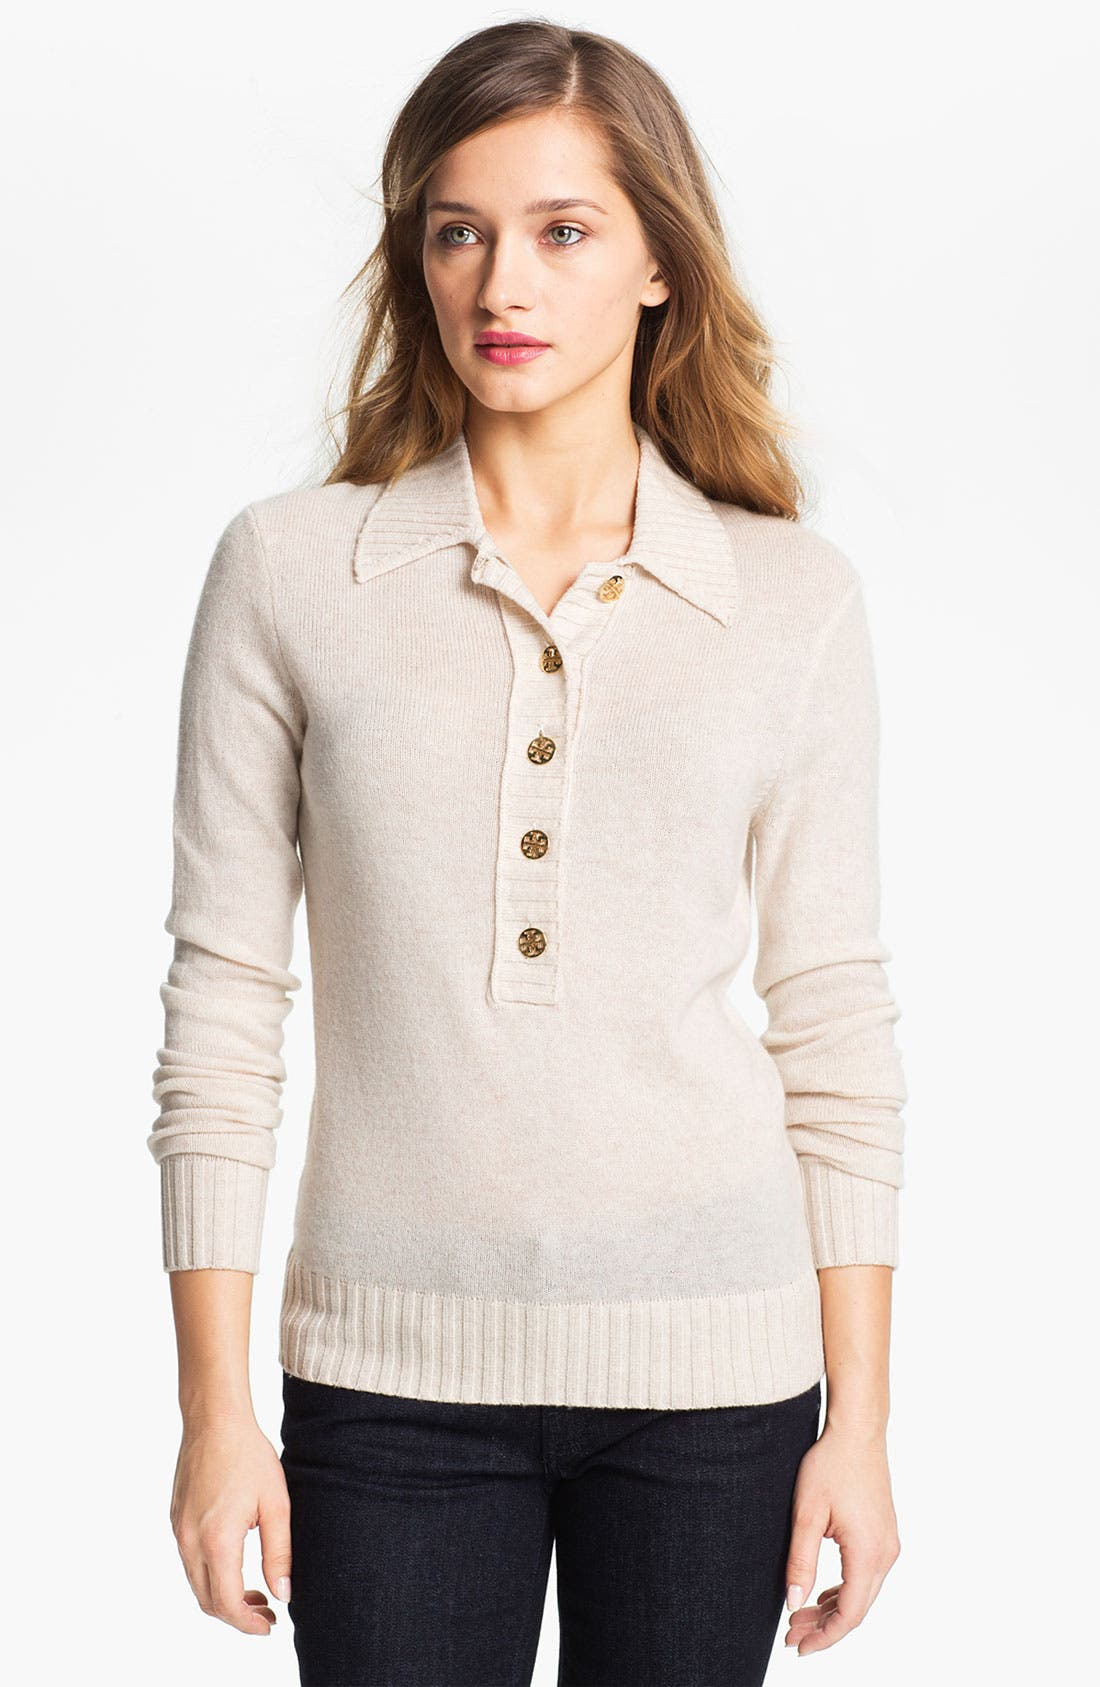 Alternate Image 1 Selected - Tory Burch 'Gertrude' Wool Blend Sweater